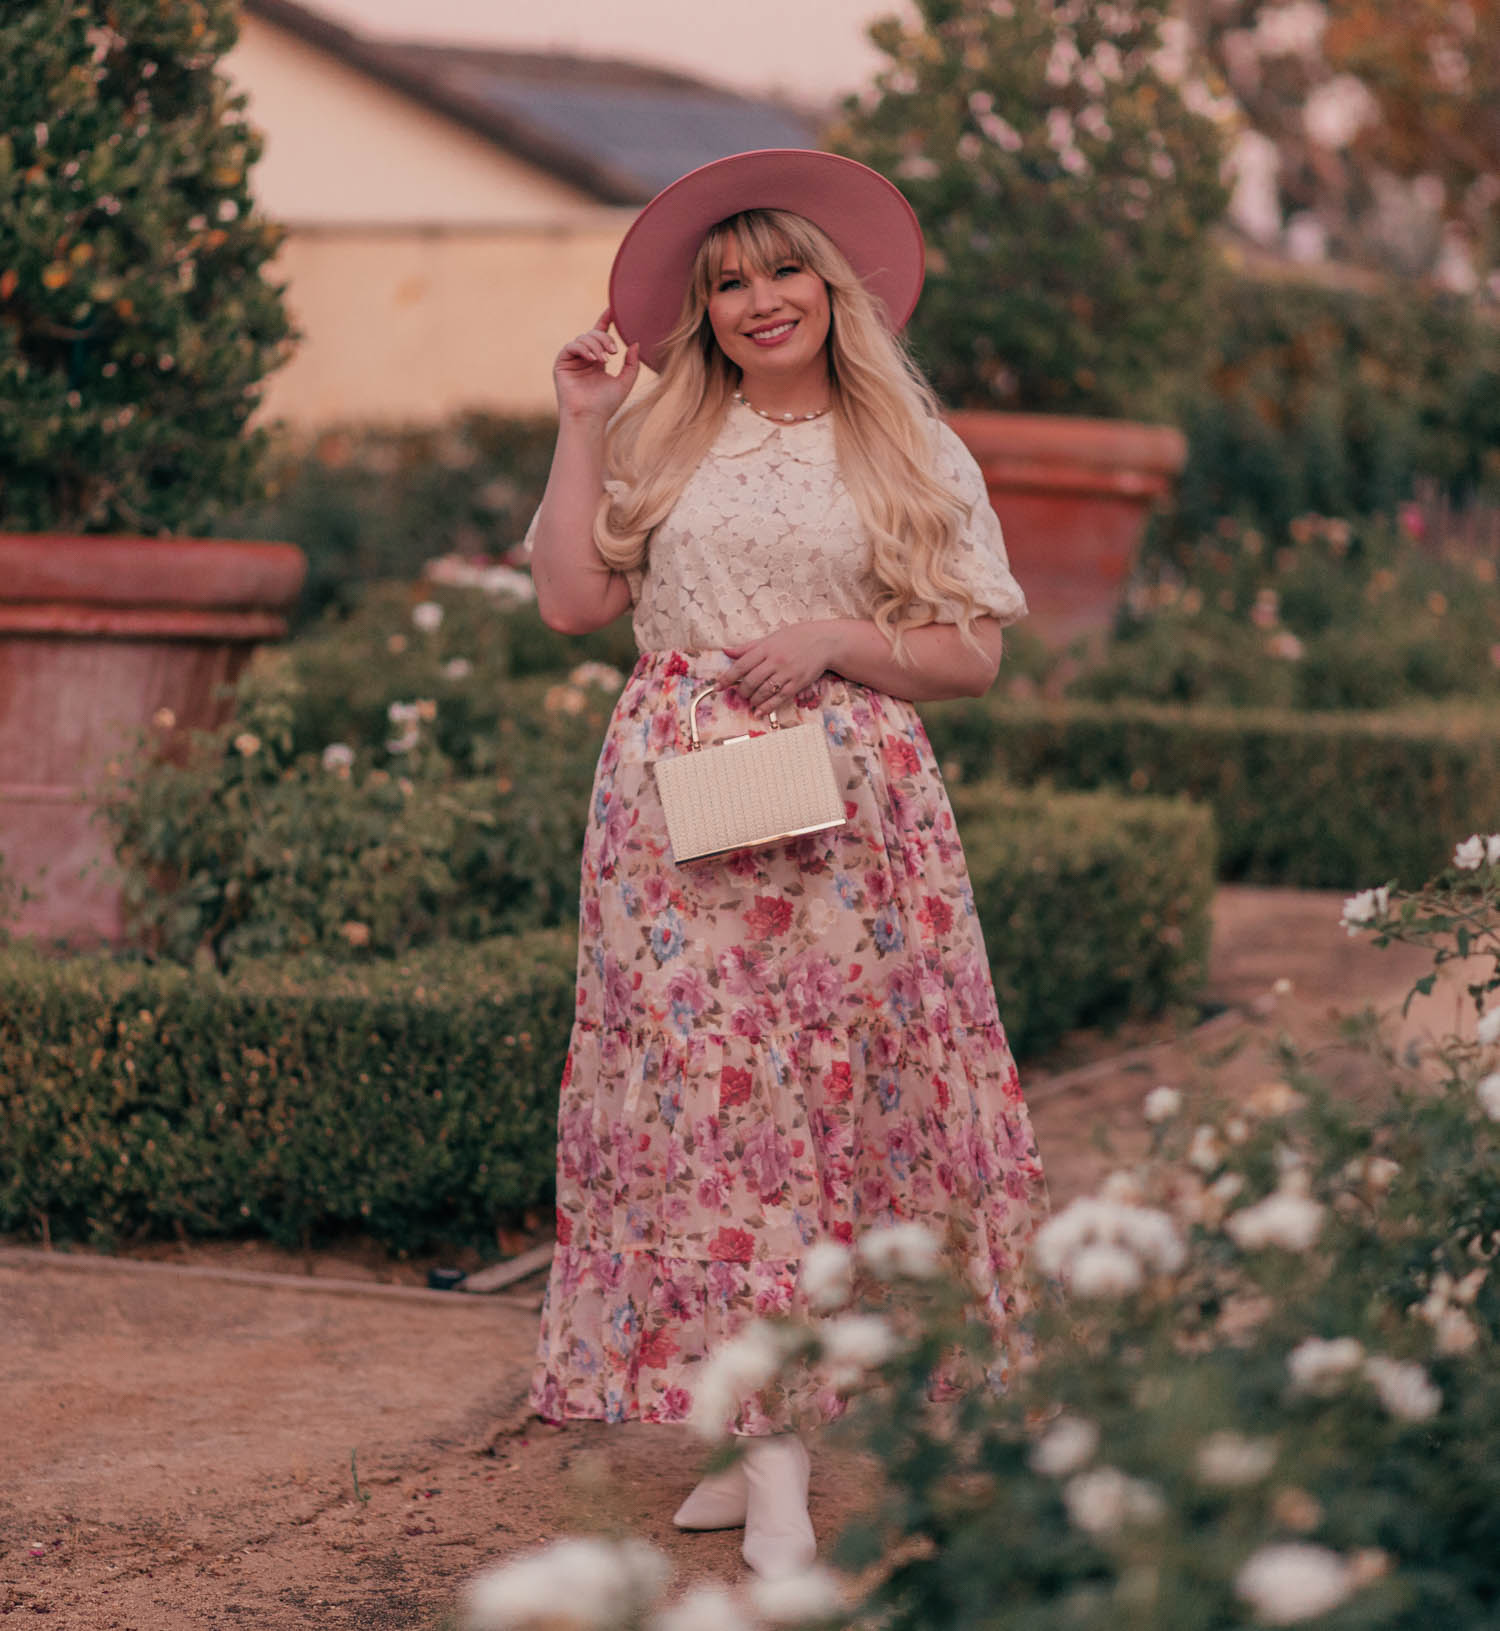 Feminine Fashion Blogger Elizabeth Hugen of Lizzie in Lace shares her top 5 Feminine Summer Essentials for the Girly Girl including the Lack of Color Rose Rancher Hat